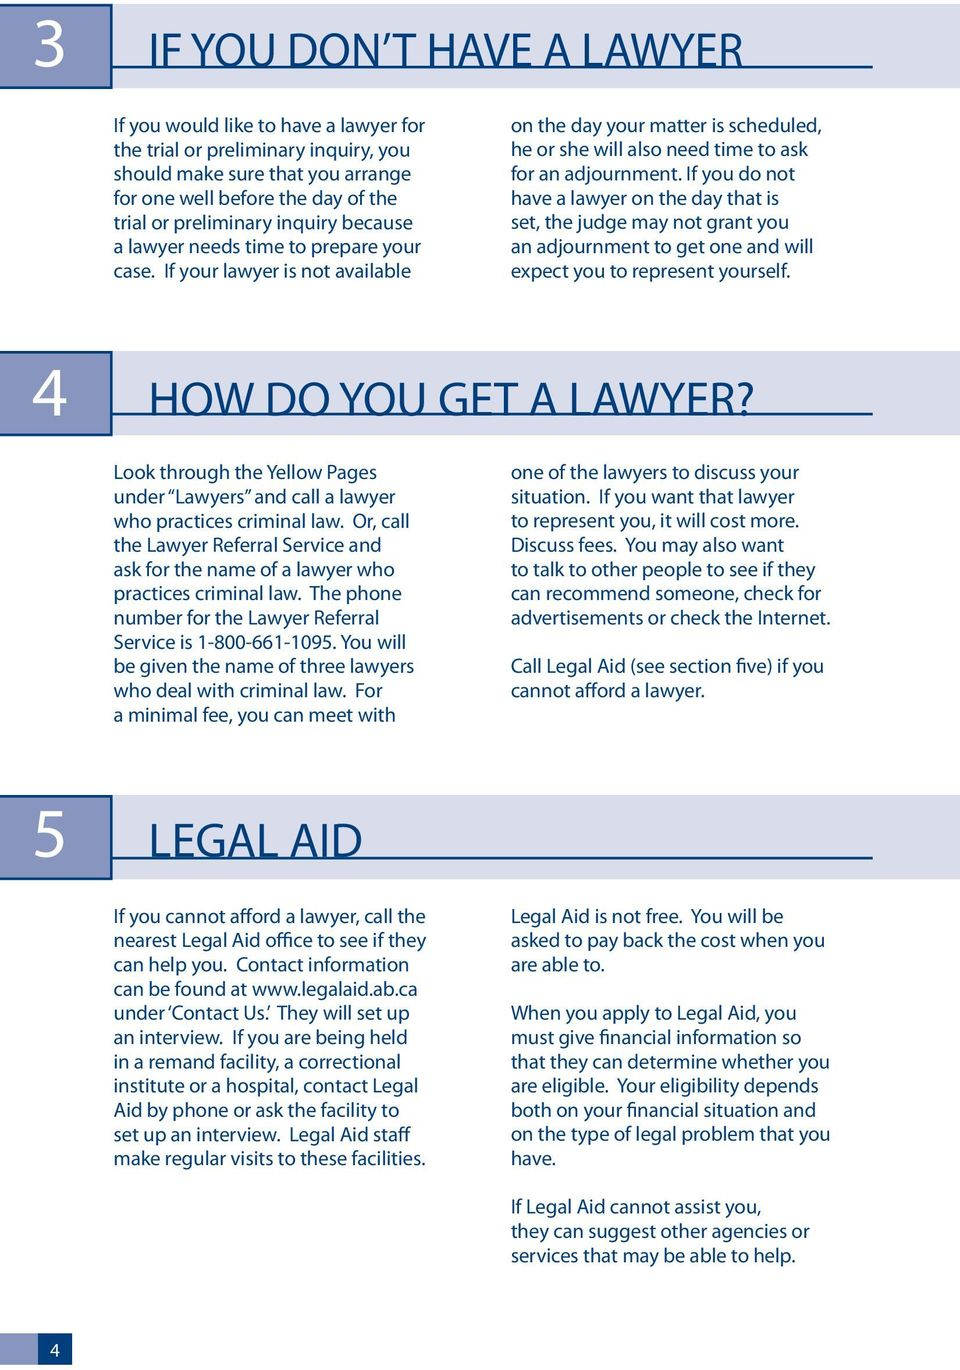 If you do not have a lawyer on the day that is set, the judge may not grant you an adjournment to get one and will expect you to represent yourself. 4 HOW DO YOU GET A LAWYER?